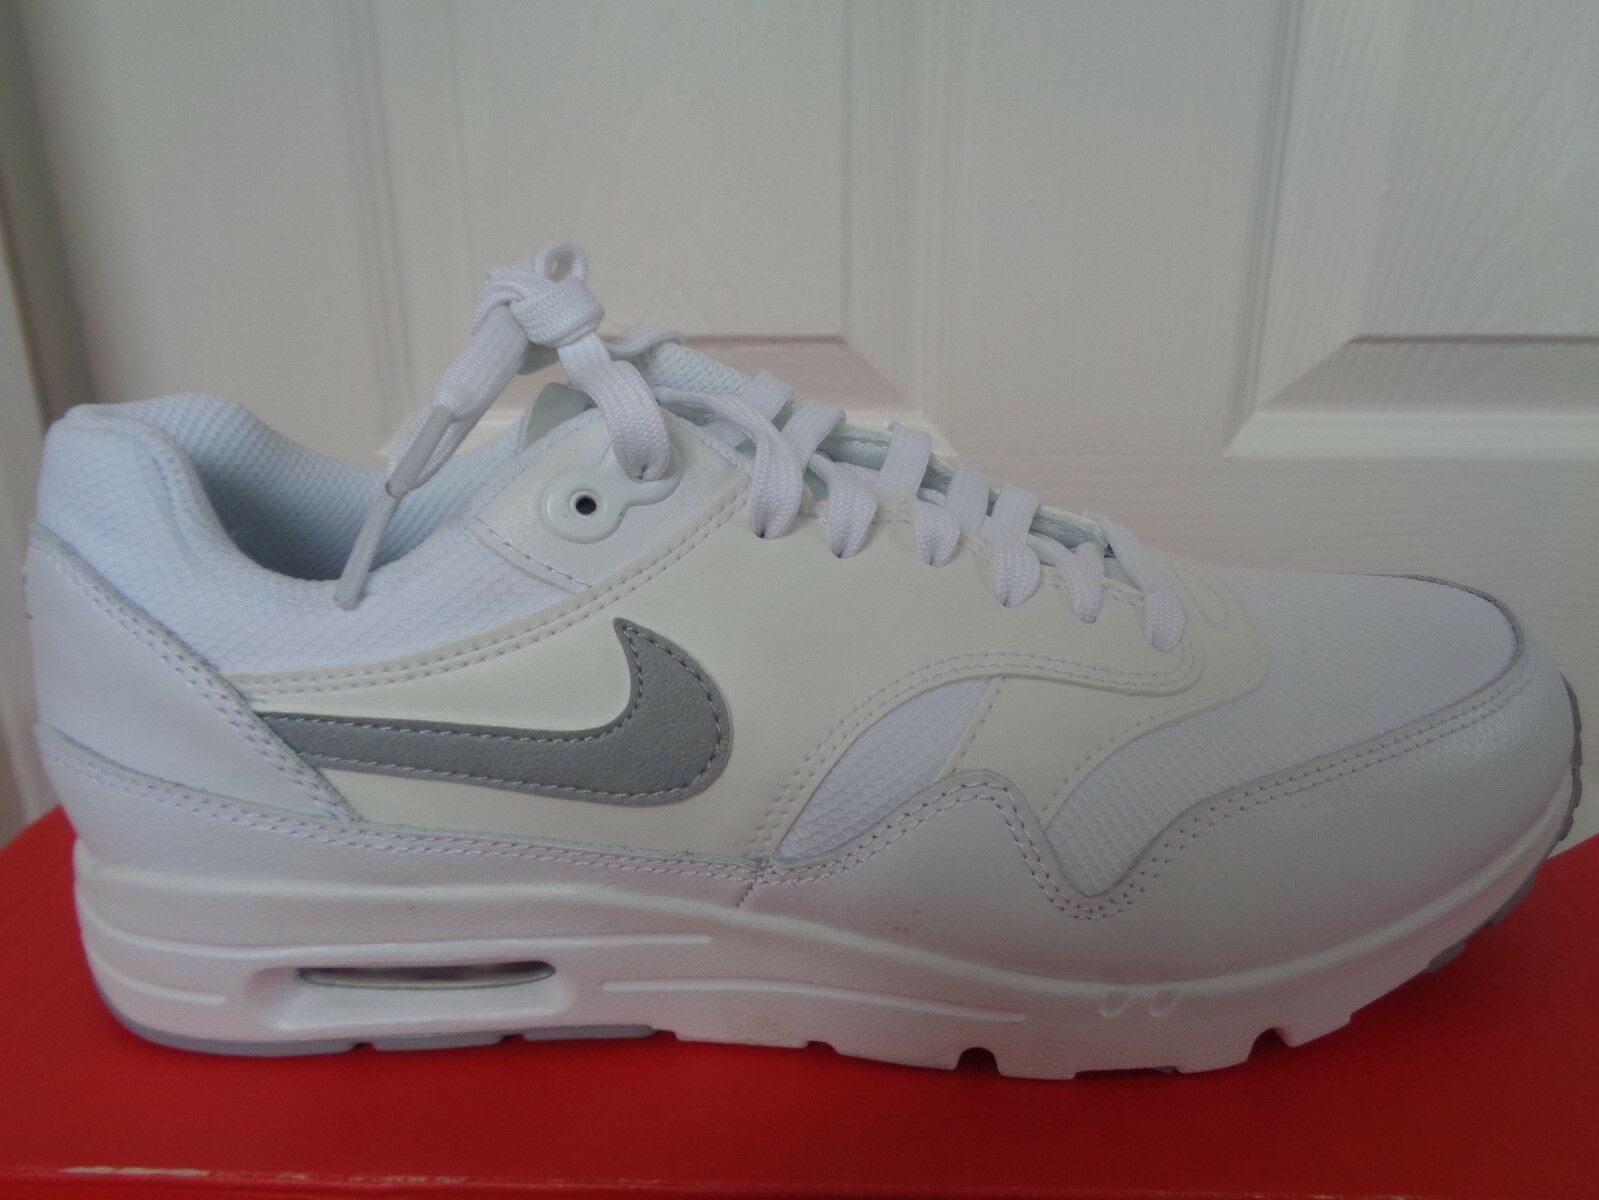 Nike Air Max 1 Ultra Essentials Wmns Baskets 704993 102 UK 4.5 EU 38 US 7 NEW